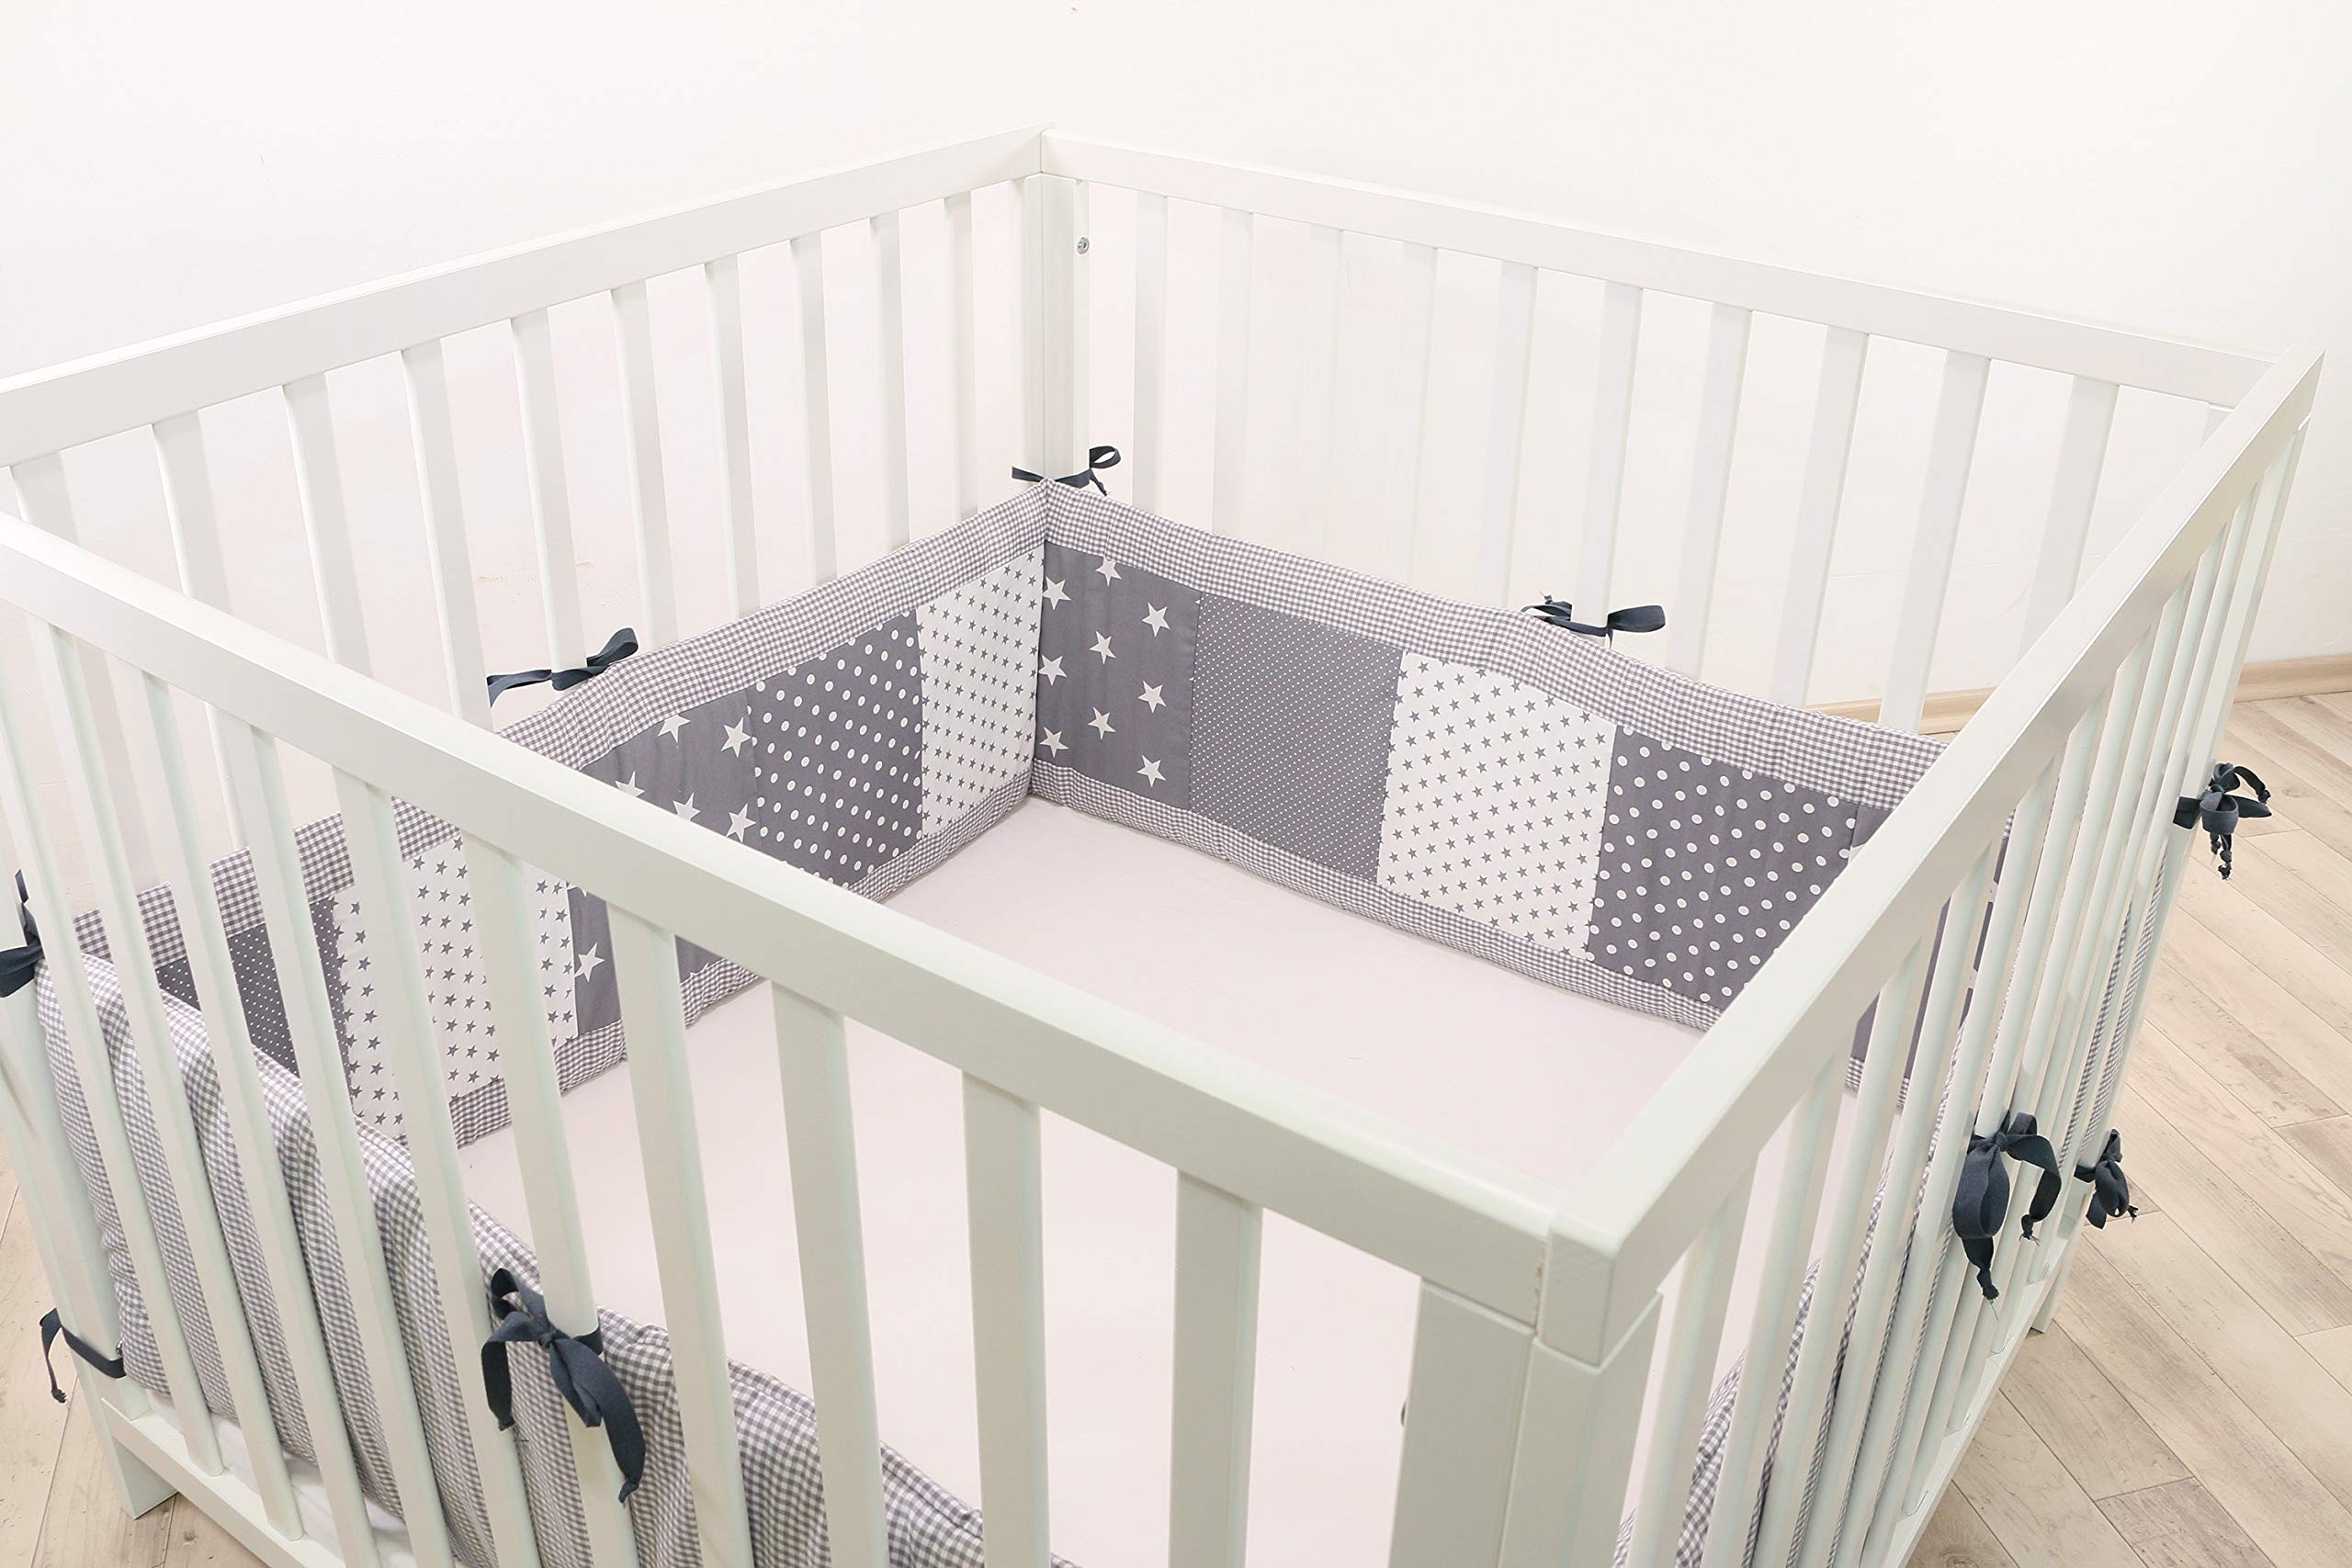 ULLENBOOM ® Bumper - Grey Stars (400 x 30 cm Baby playpen Bumper, Full Surround Bumper Pads for 100 x 100 cm playpen) ULLENBOOM This 400 x 30 cm patchwork bumper serves as a protective insert and surround for 100 x 100 cm playpens, to provide babies with protection - especially head protection - from playpen bars The sizes 200 x 30 cm and 400 x 30 cm (full surround) are for playpens - the 'full surround' bumper comes in two sections. ULLENBOOM  also offers additional sizes for 140 x 70 cm and 120 x 60 cm cots These bumpers can be washed at 30 °C and the materials used are certified according to the Oeko-Tex standard (tested for harmful substances, hypoallergenic); smooth outer fabric: 100% cotton (Oeko-Tex); soft, thick wadding: 100% polyester (Oeko-Tex) 1